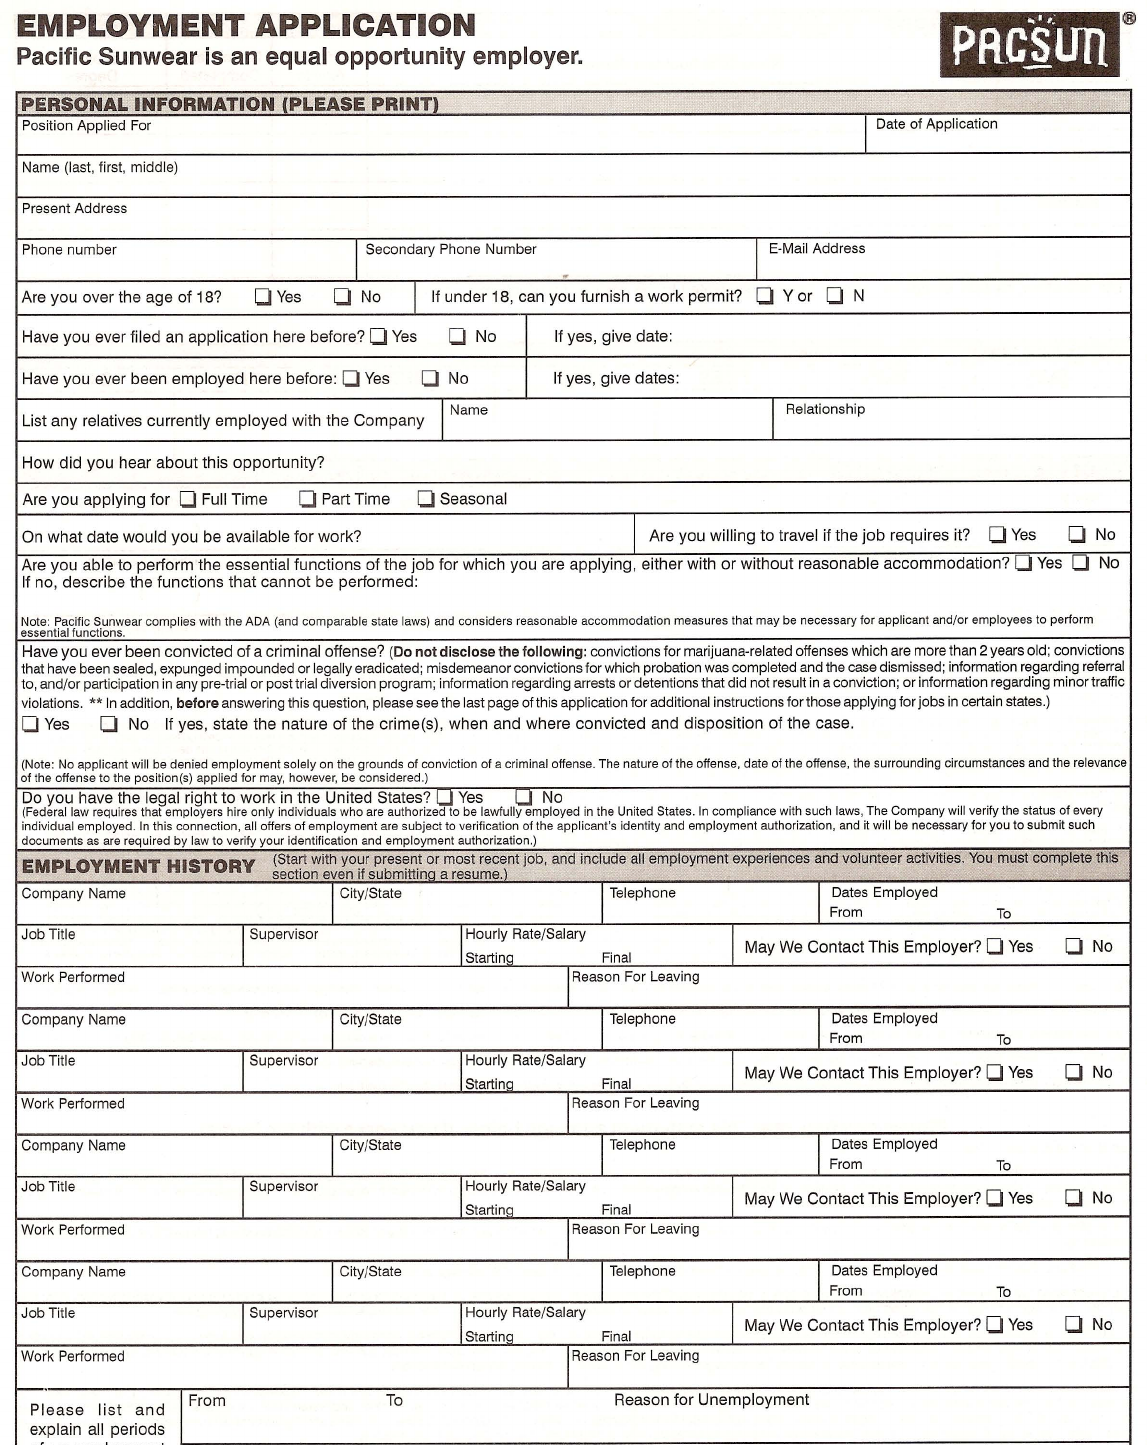 free printable pacsun job application form